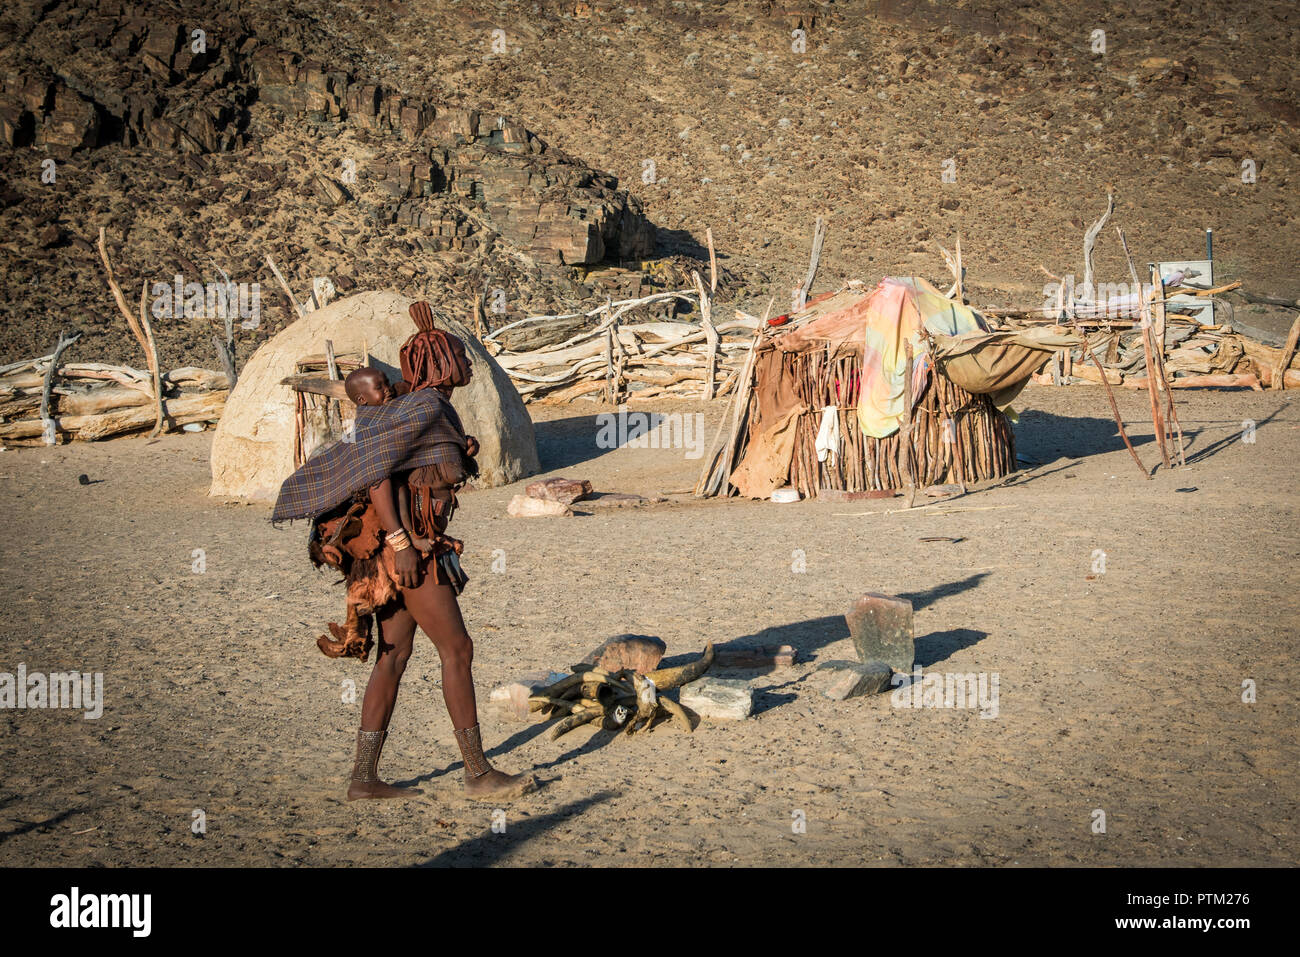 A Himba lady carrying her child walks across her traditional camp situated near to Purros in the remote province of Kaokaland in Namibia. - Stock Image